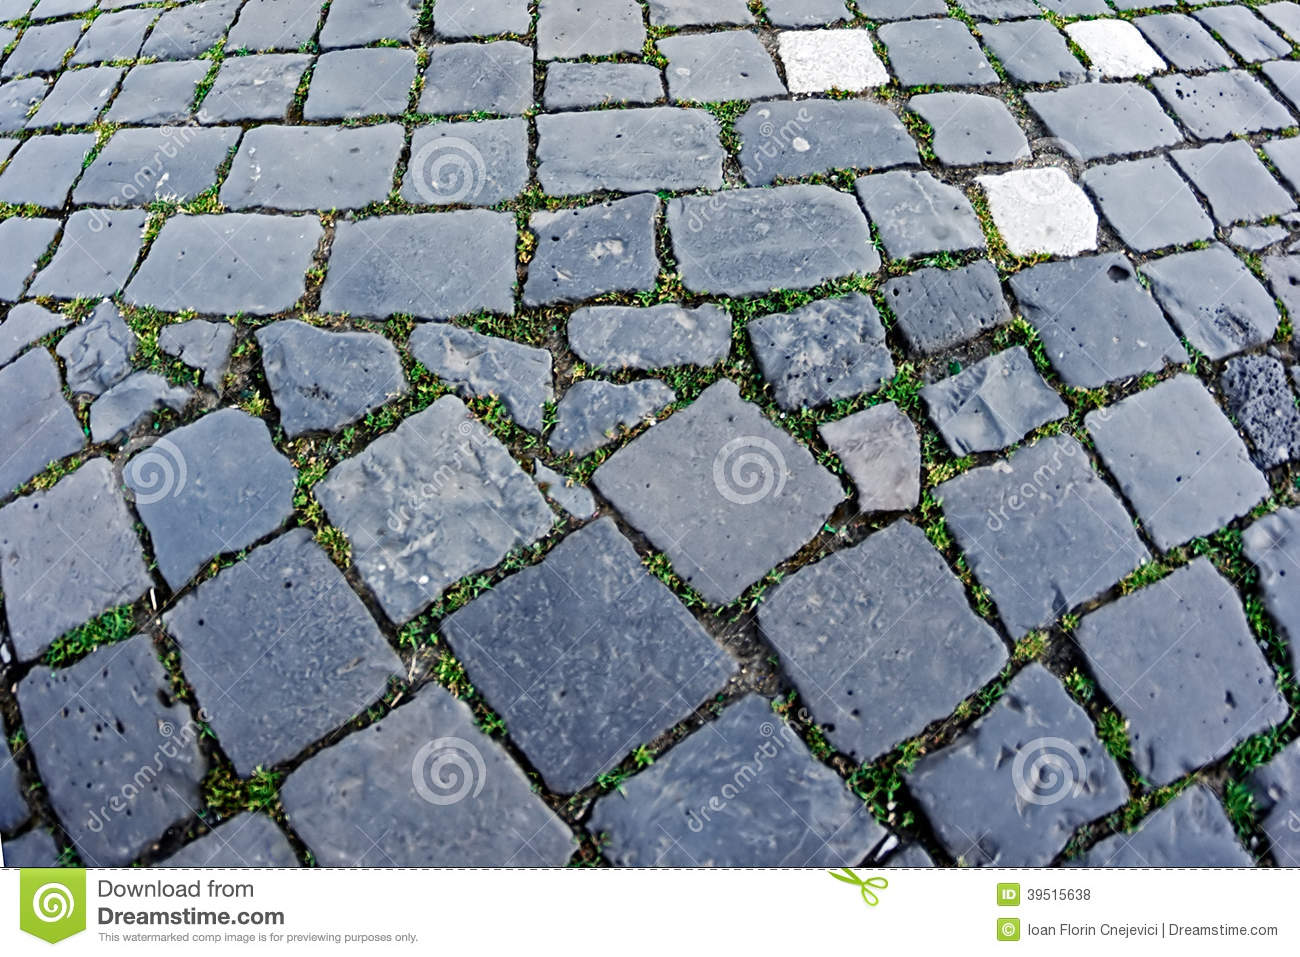 Cobblestone sidewalk made of cubic stones 10